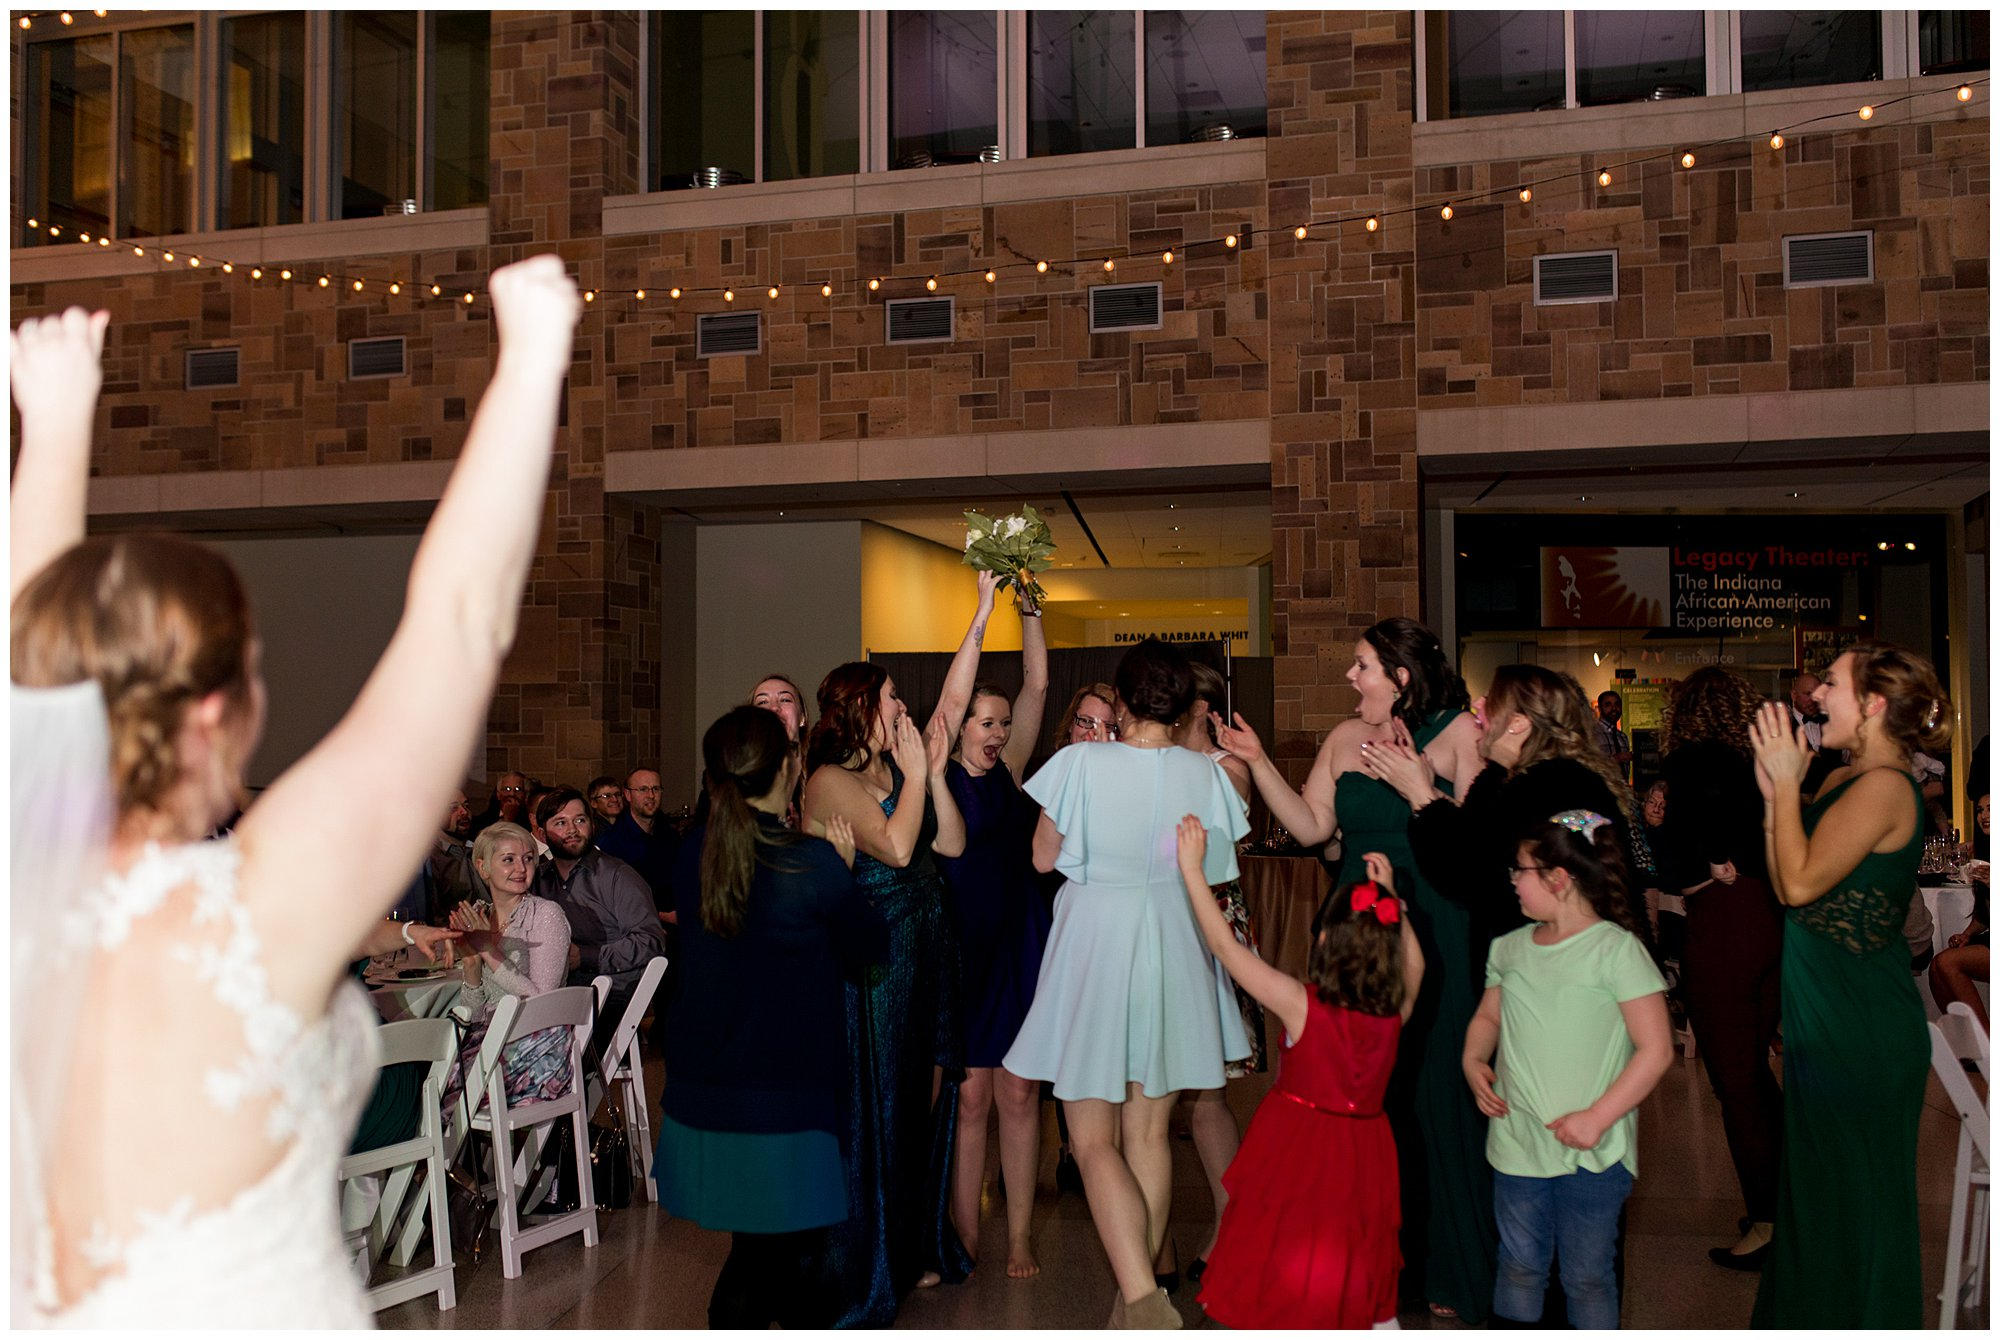 guest catches bouquet tossed by bride at Indiana State Museum